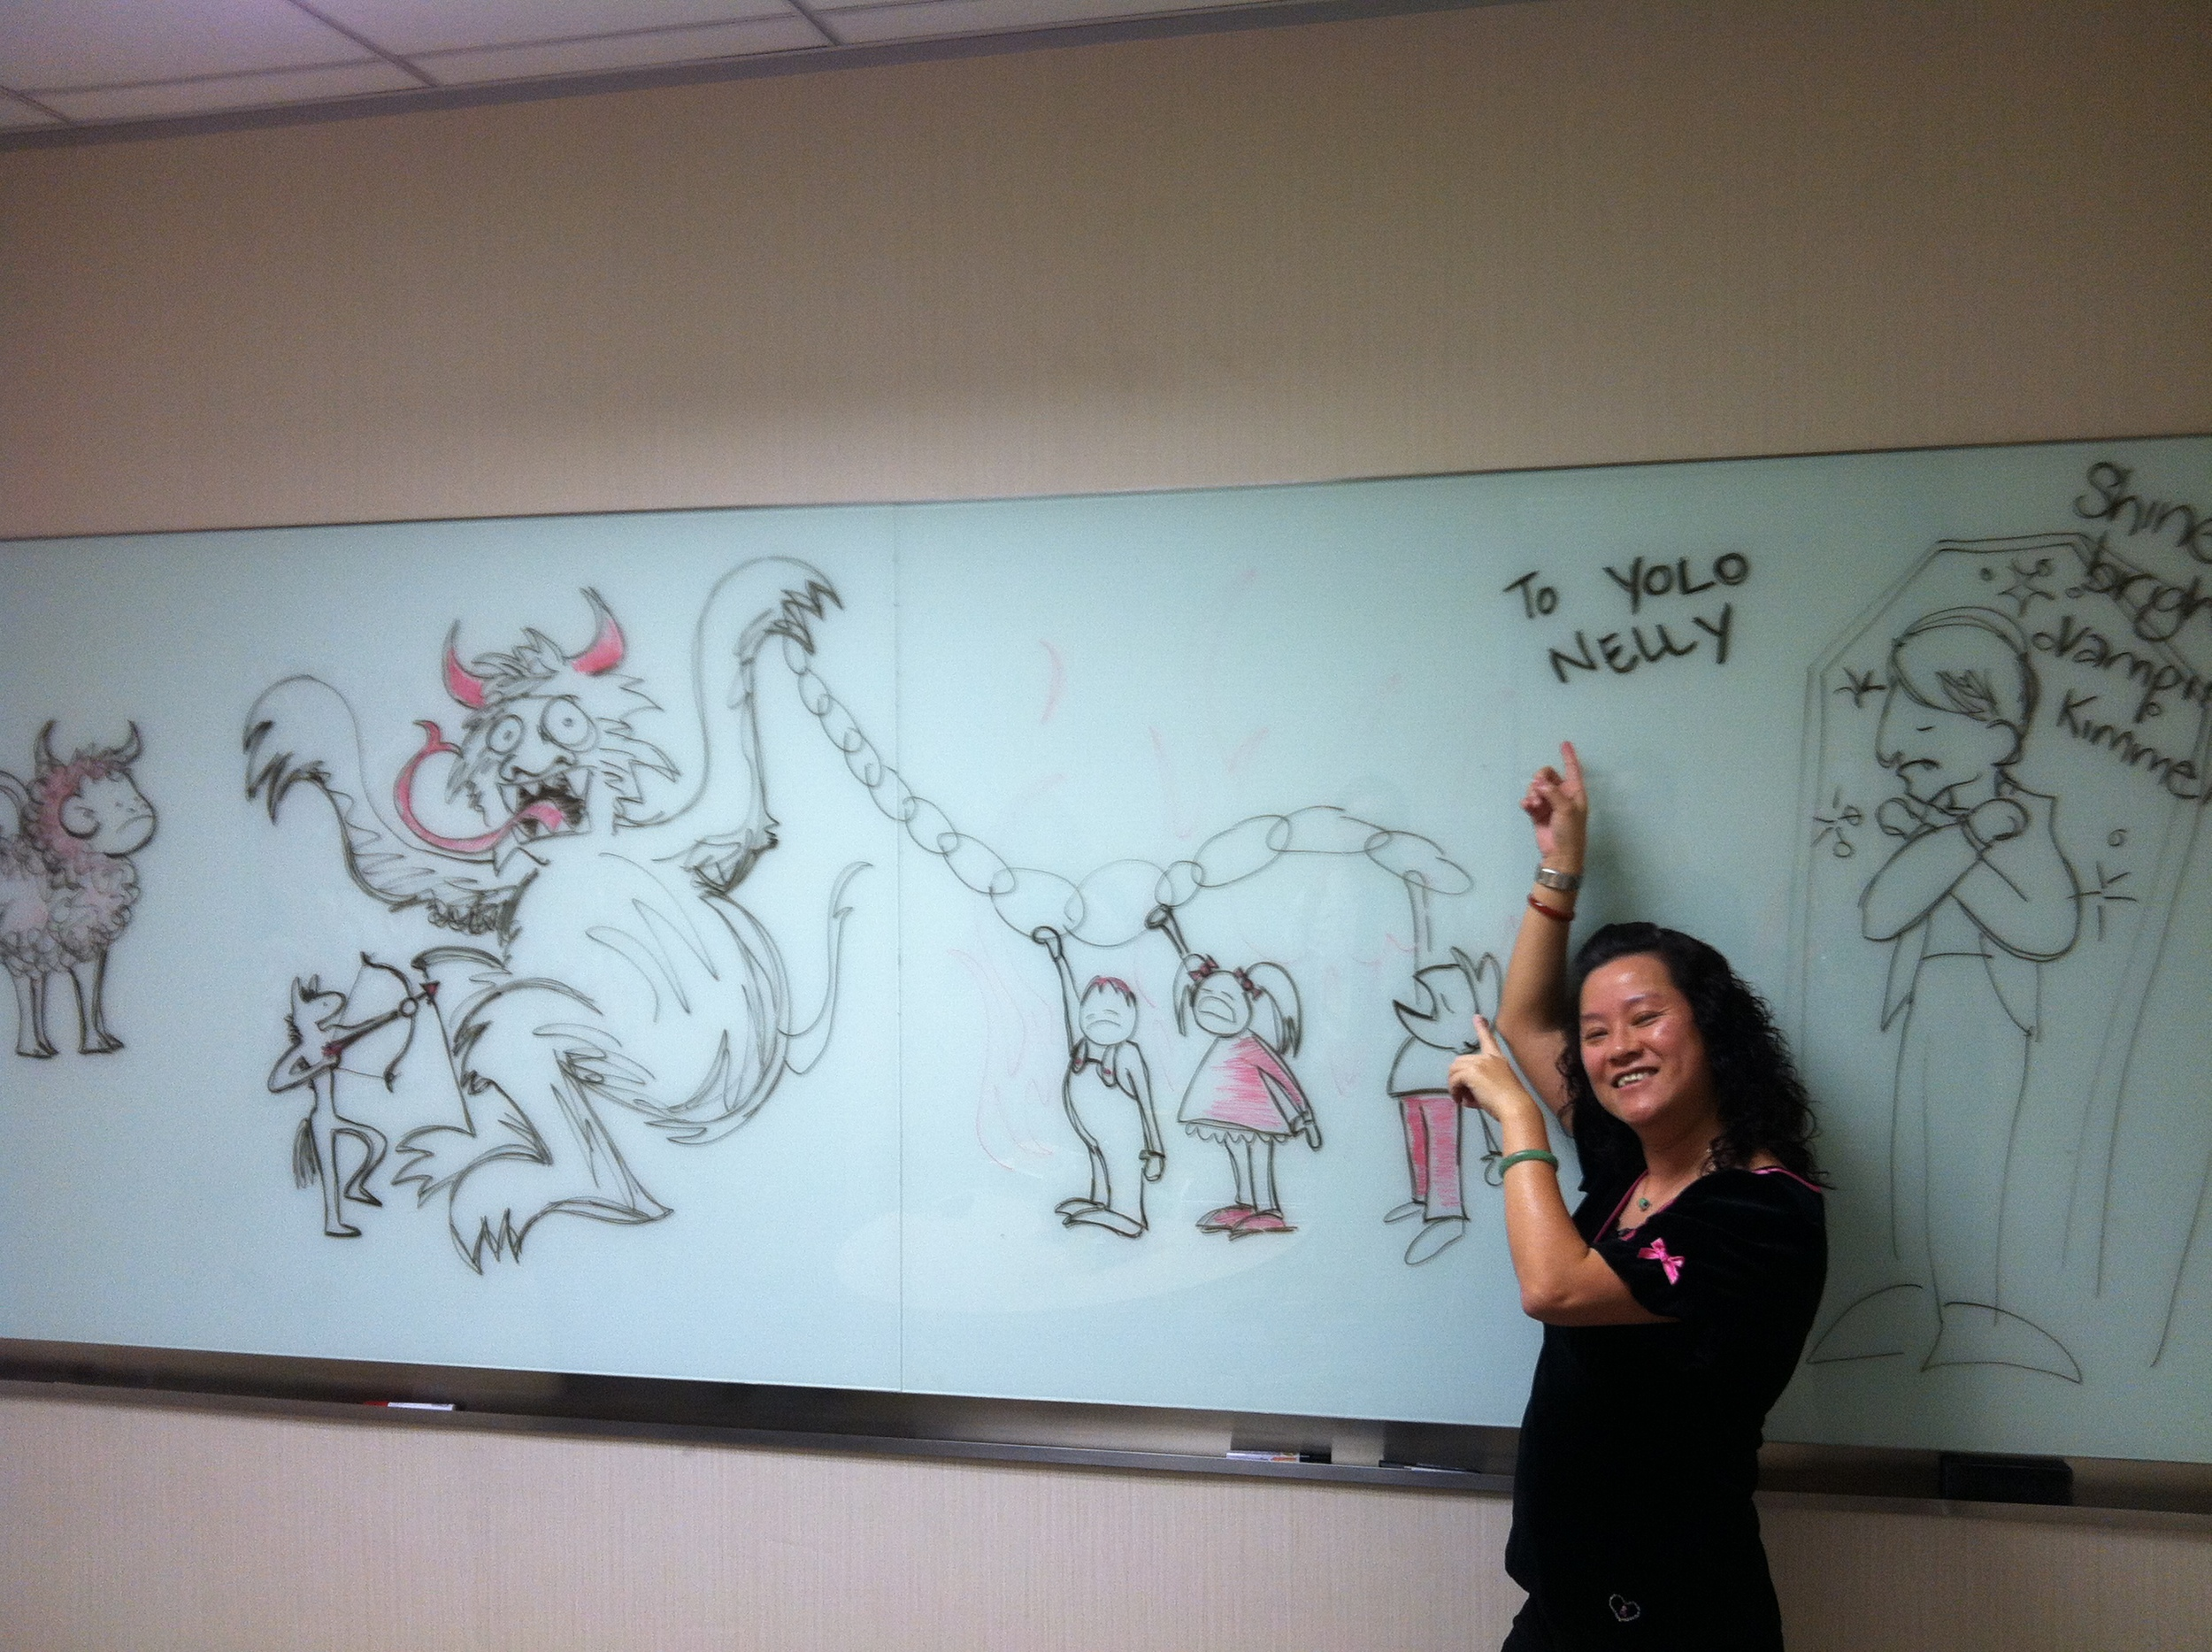 I taught my friends in China all about the Krampus, as well. As a farewell gift, I drew this picture of the Krampus on a white board for my friend, Nelly. She loved it. (she also loved learning abut YOLO, so now we call her YOLO Nelly)